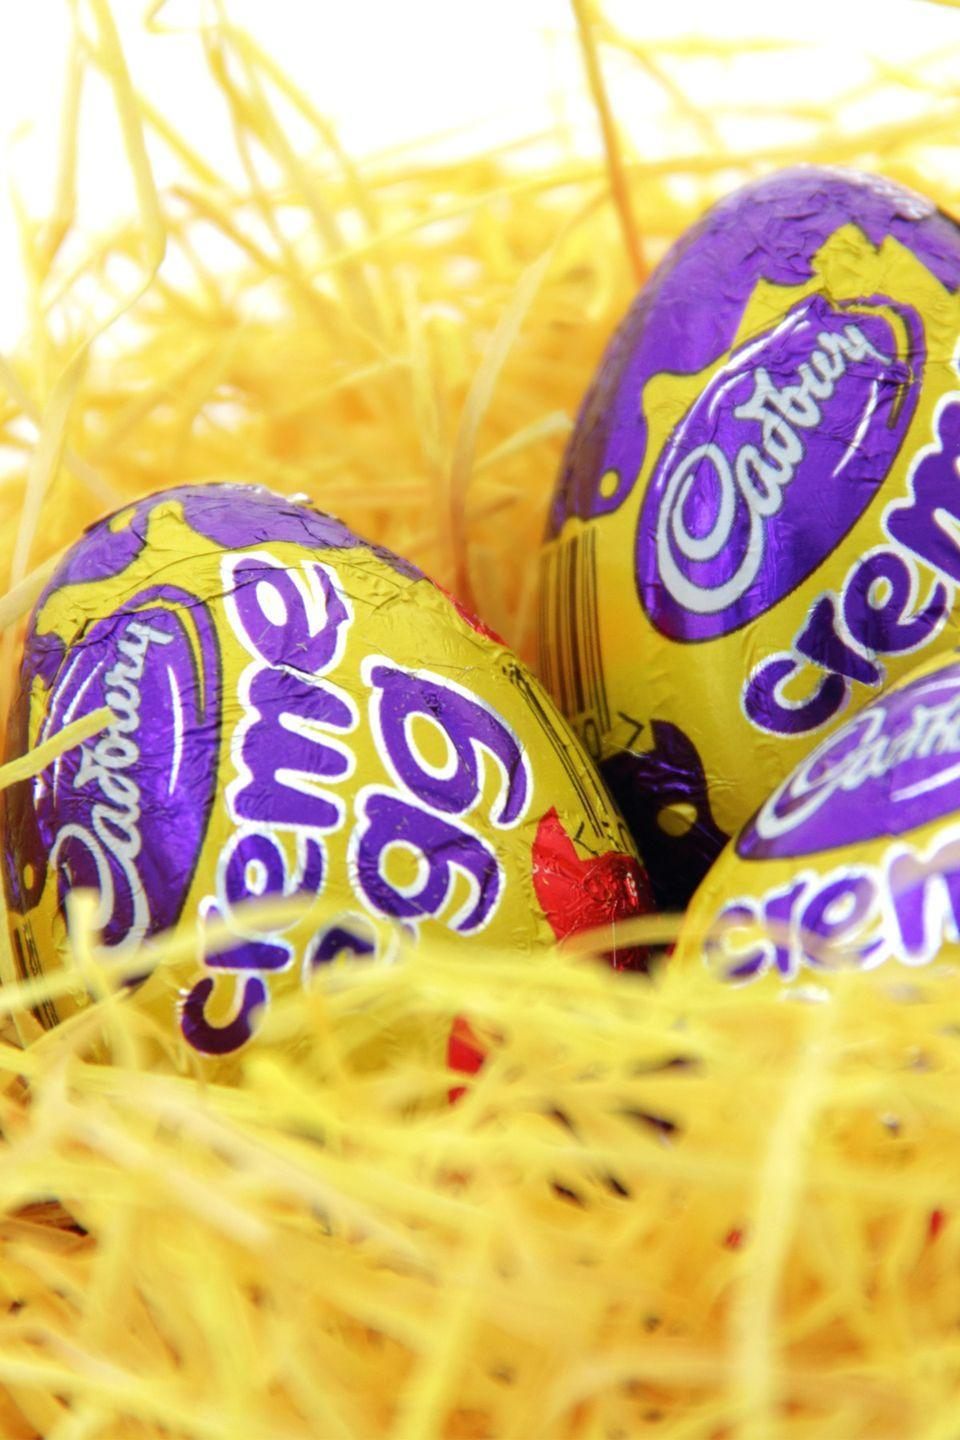 "<p>Even more impressive is that the Bournville factory in Birmingham, England, makes 500 million every year. If you piled those eggs on top of each other, they'd be <a href=""http://www.lifedeathprizes.com/lists/facts-about-cadbury-creme-eggs-and-recipes-41189"" rel=""nofollow noopener"" target=""_blank"" data-ylk=""slk:taller than Everest"" class=""link rapid-noclick-resp"">taller than Everest</a>.</p><p><strong>RELATED:</strong> <a href=""https://www.goodhousekeeping.com/holidays/easter-ideas/a26293194/cute-easter-instagram-captions/"" rel=""nofollow noopener"" target=""_blank"" data-ylk=""slk:60 Cute Easter Instagram Captions for Your Egg-ceptional Photos"" class=""link rapid-noclick-resp"">60 Cute Easter Instagram Captions for Your Egg-ceptional Photos</a></p>"